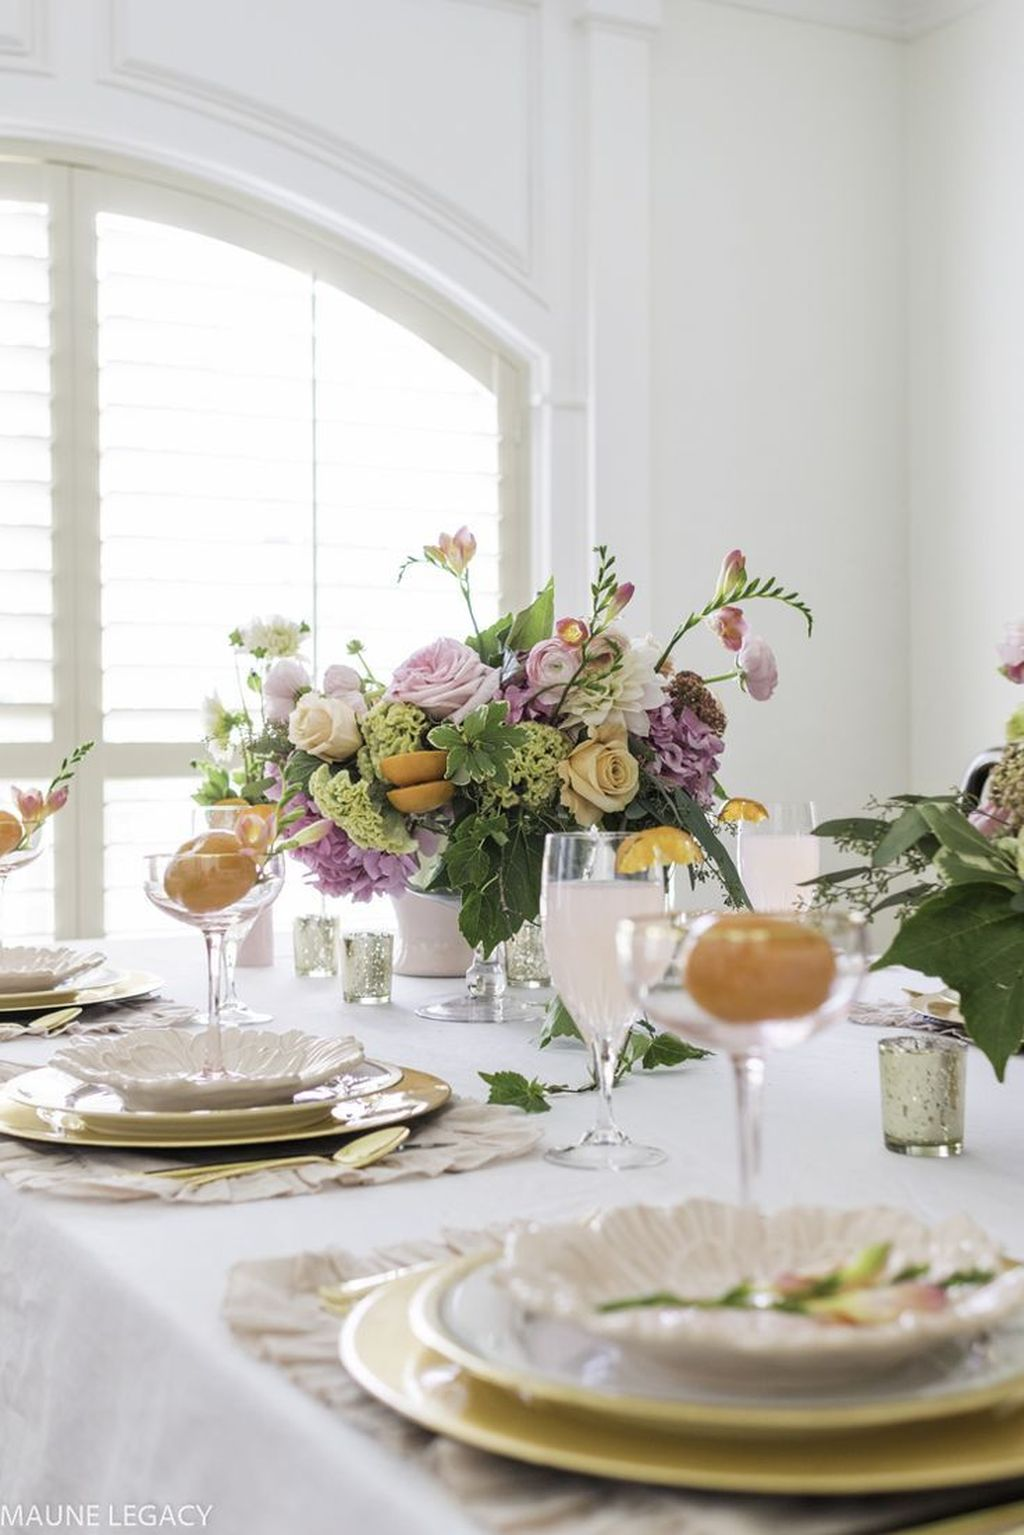 Amazing Summer Tablescapes For Dining Room Decor 24